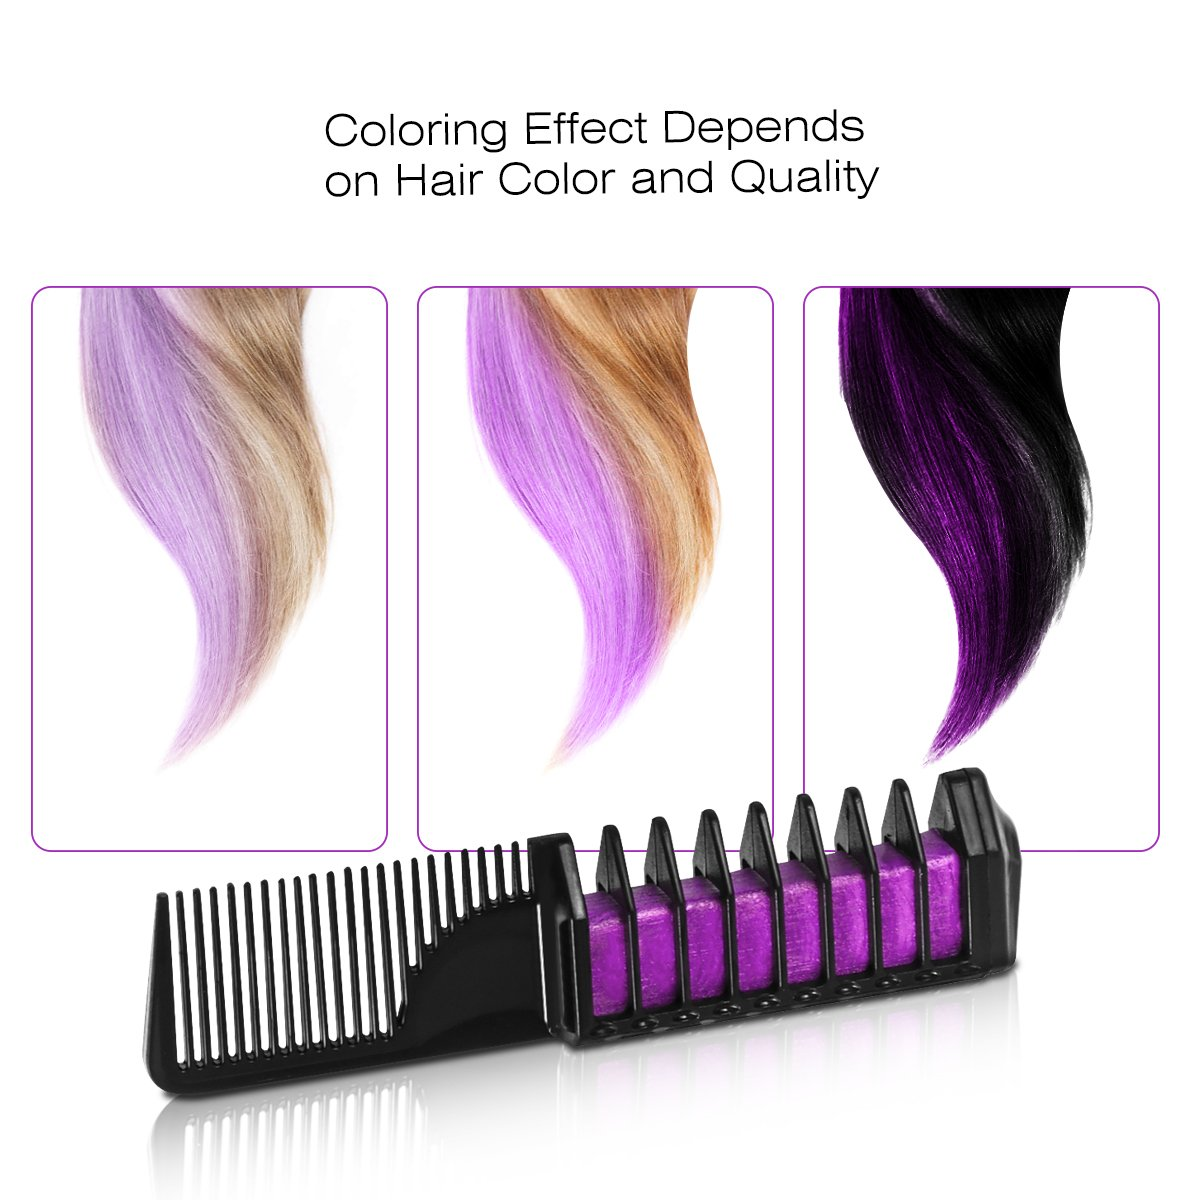 Hair Chalk Color Comb Temporary Hair Color Cream Hair Color Wax with Shawl for Party for All Hair Colors